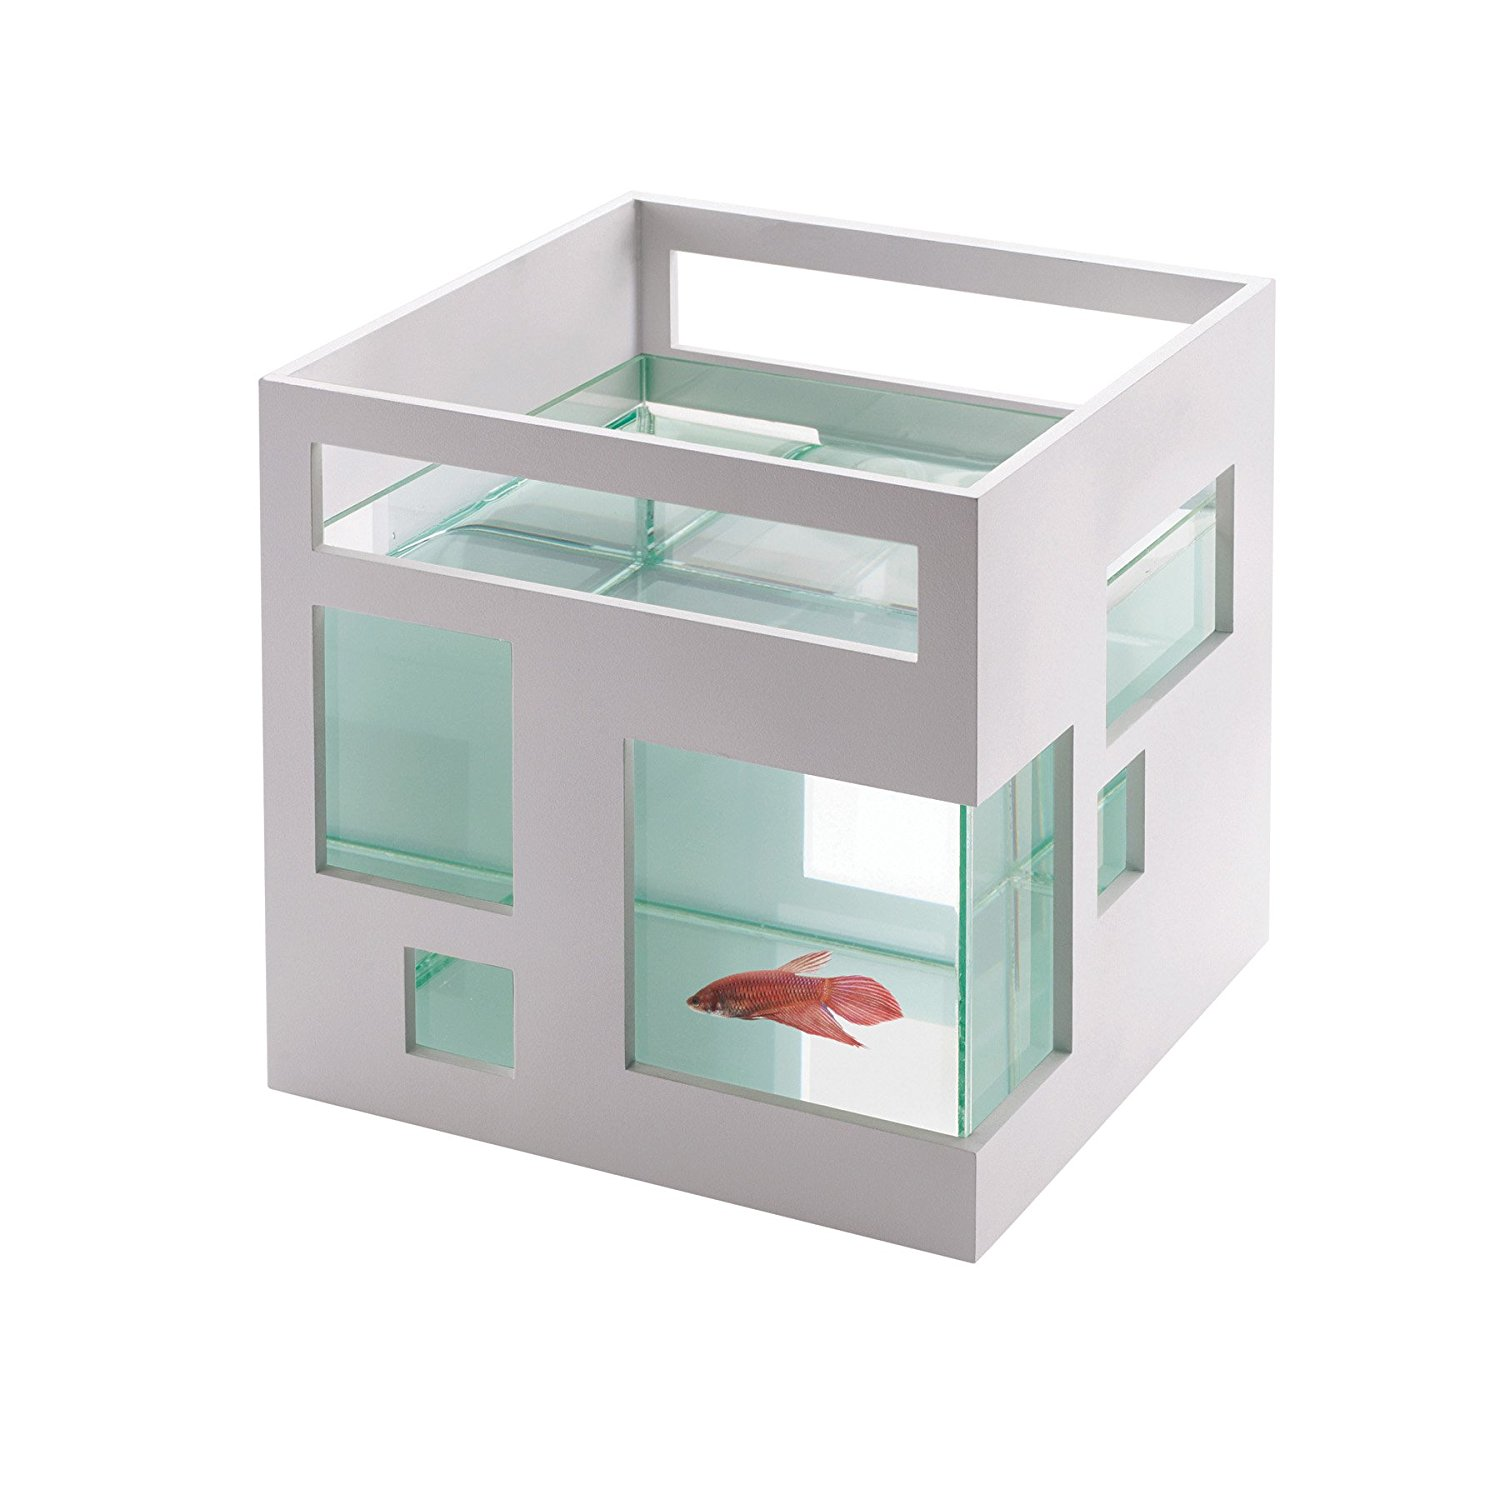 Provide your fishy friends with a modern home modeled after a contemporary condominium apartment. The sleek white shell has assymetrical windows and is the perfect home for bettas, goldfish and other small fish. Stack individual units for a cool condo effect. The small glass bowl is removable for easy cleaning.{&amp;nbsp;}Available for purchase at Amazon. (Image: Amazon)<p></p>